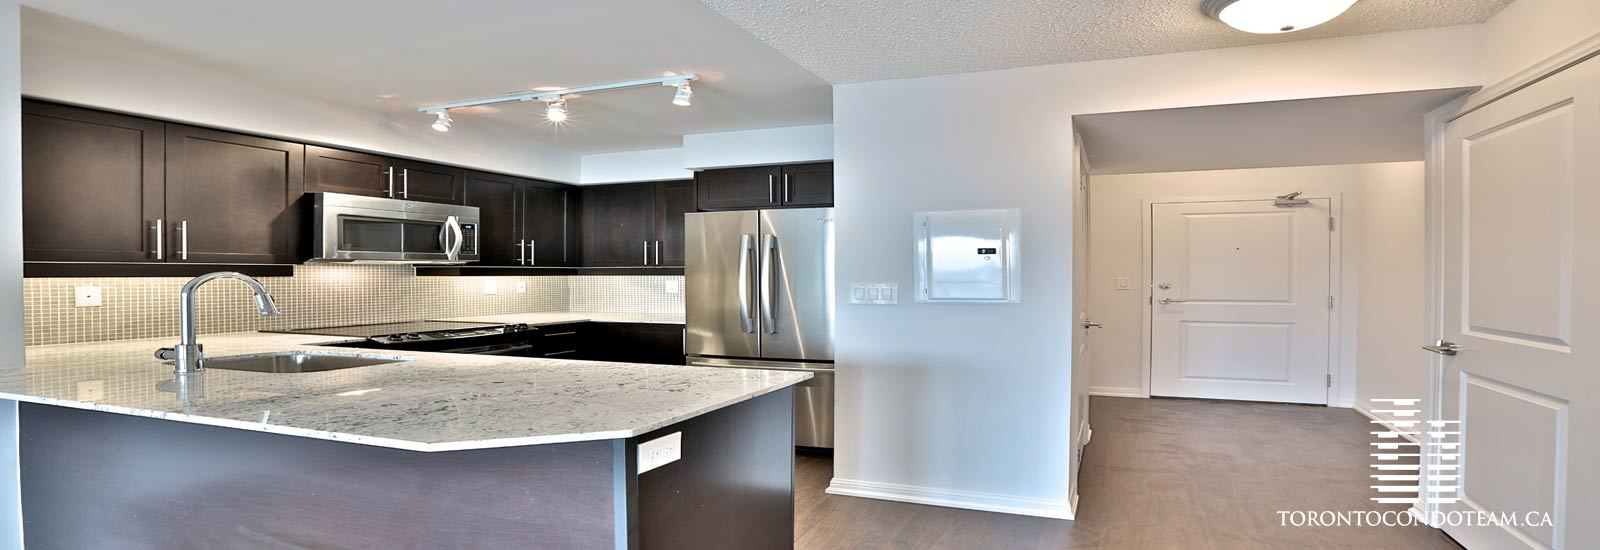 125 Western Battery Road Condos For Sale